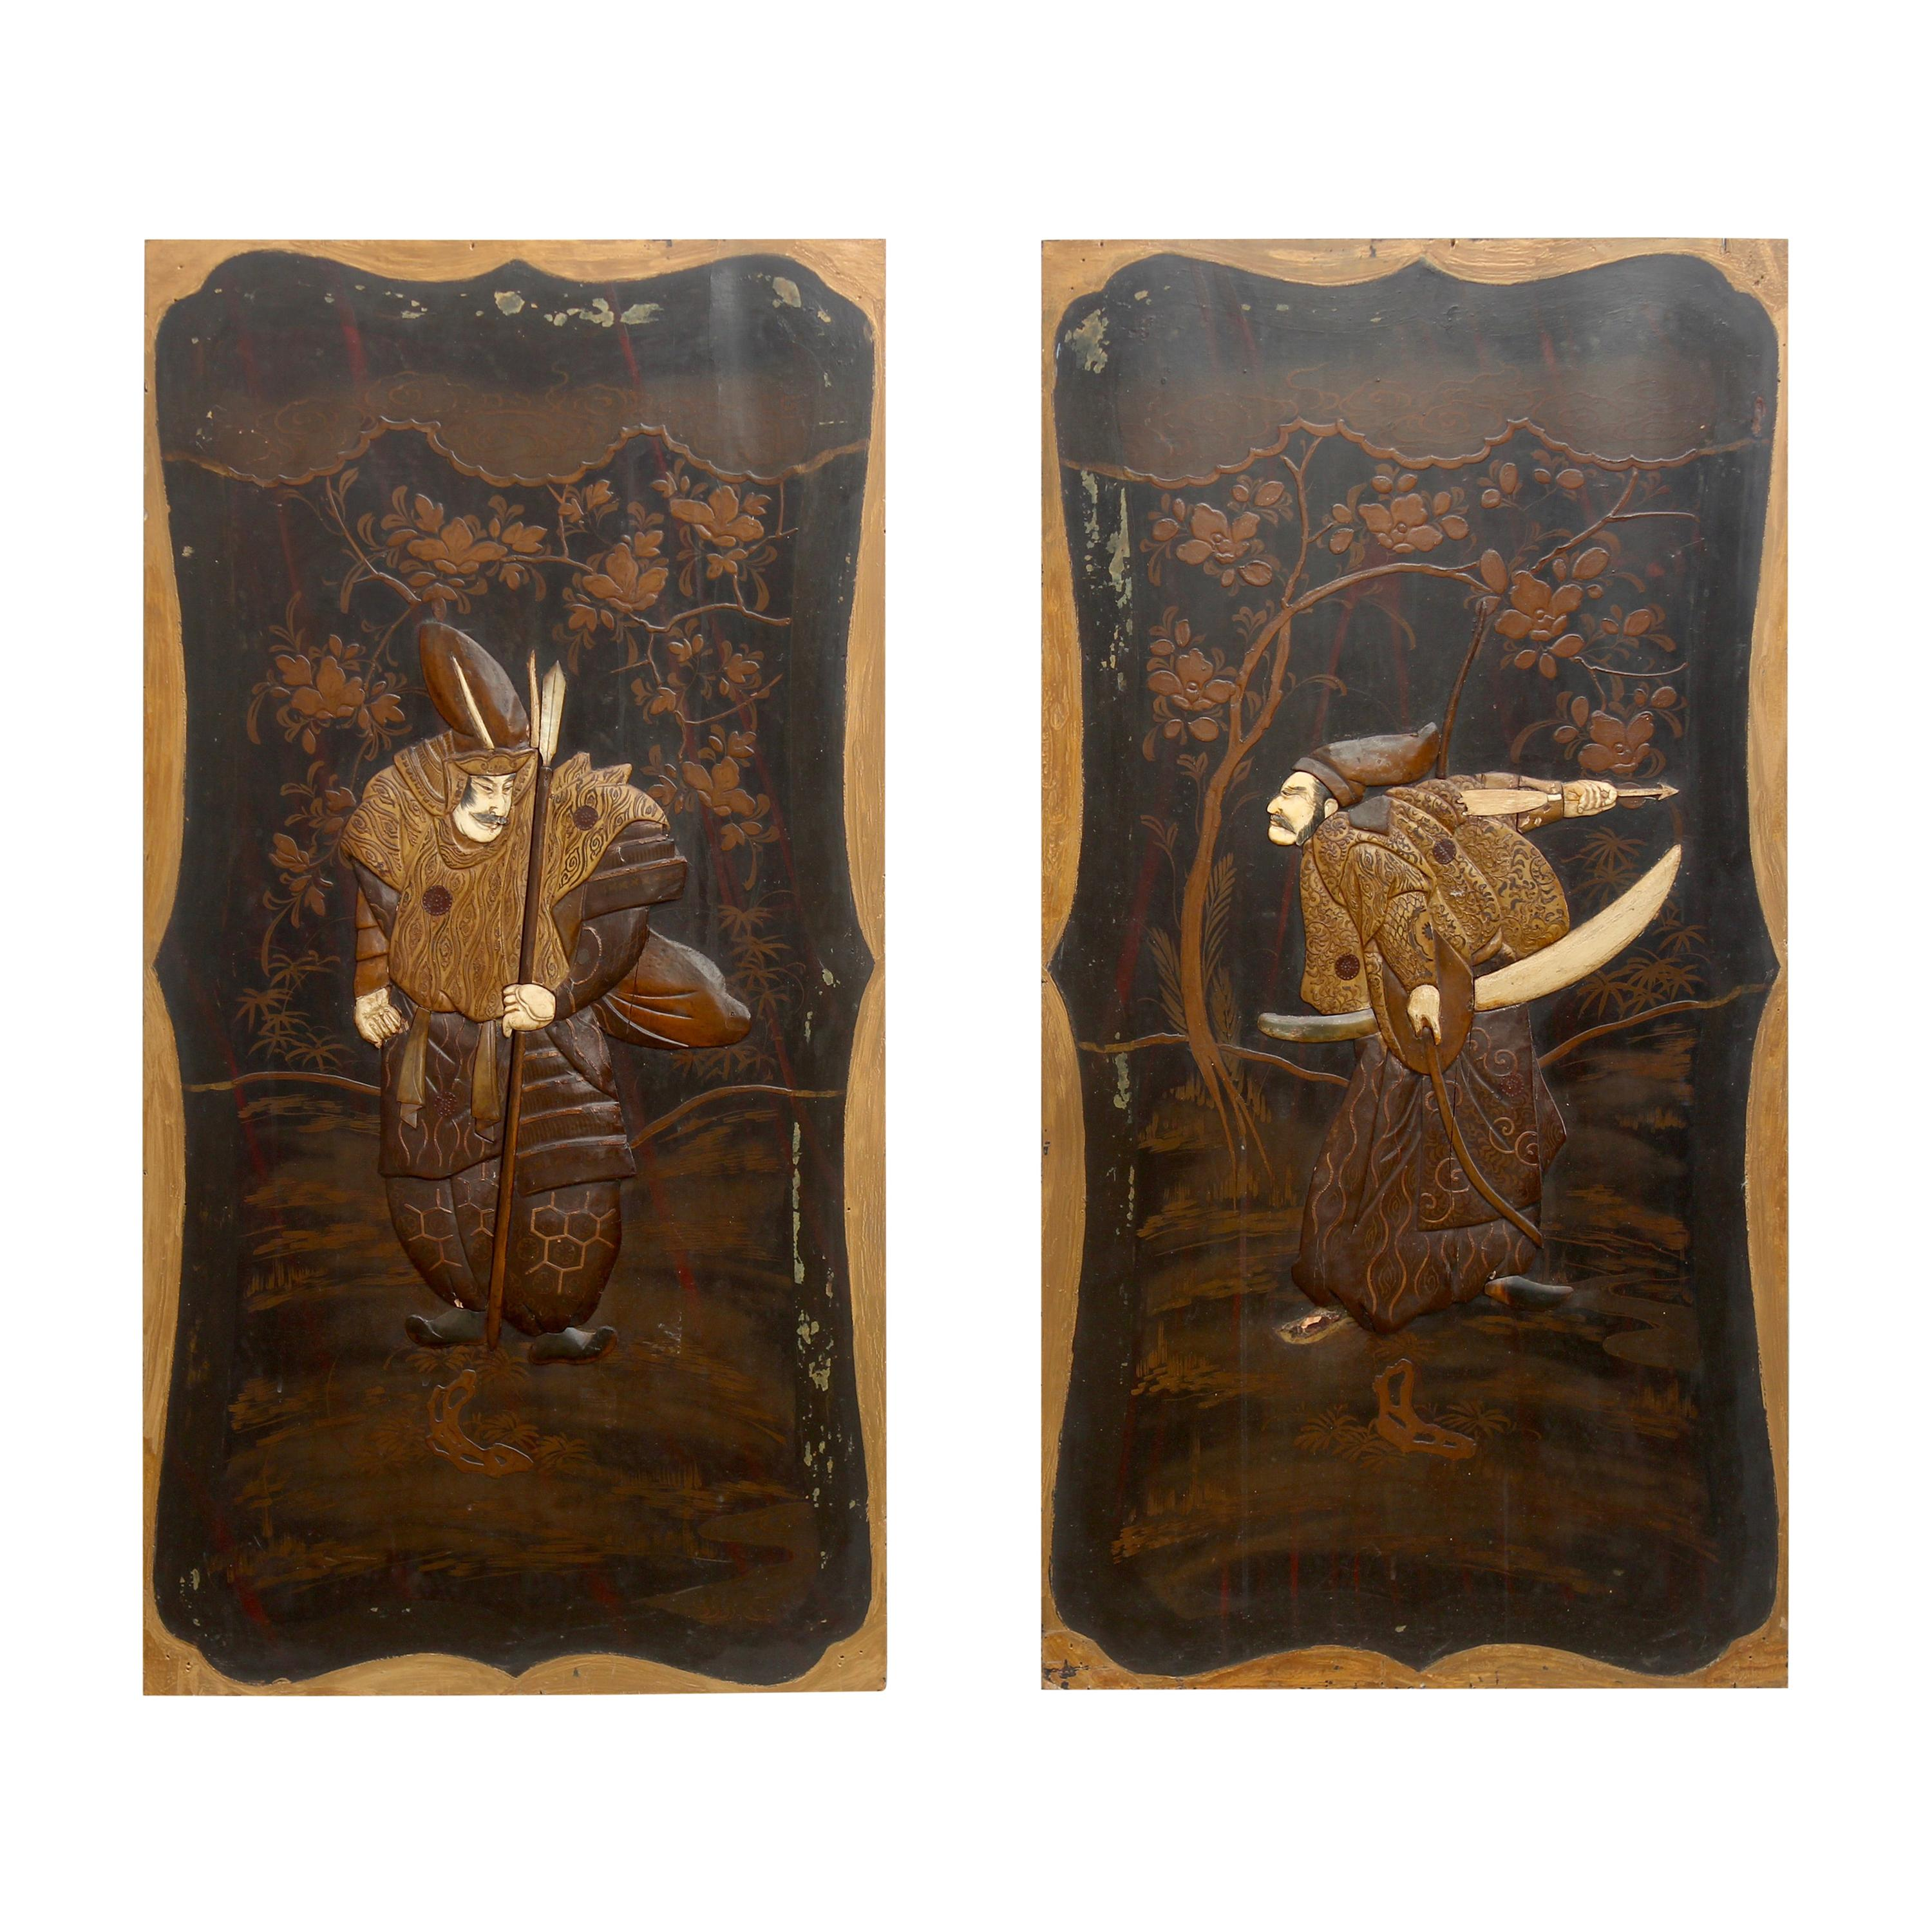 Pair of Japanese Inlaid and Lacquered Panels Meiji Period, Late 19th Century